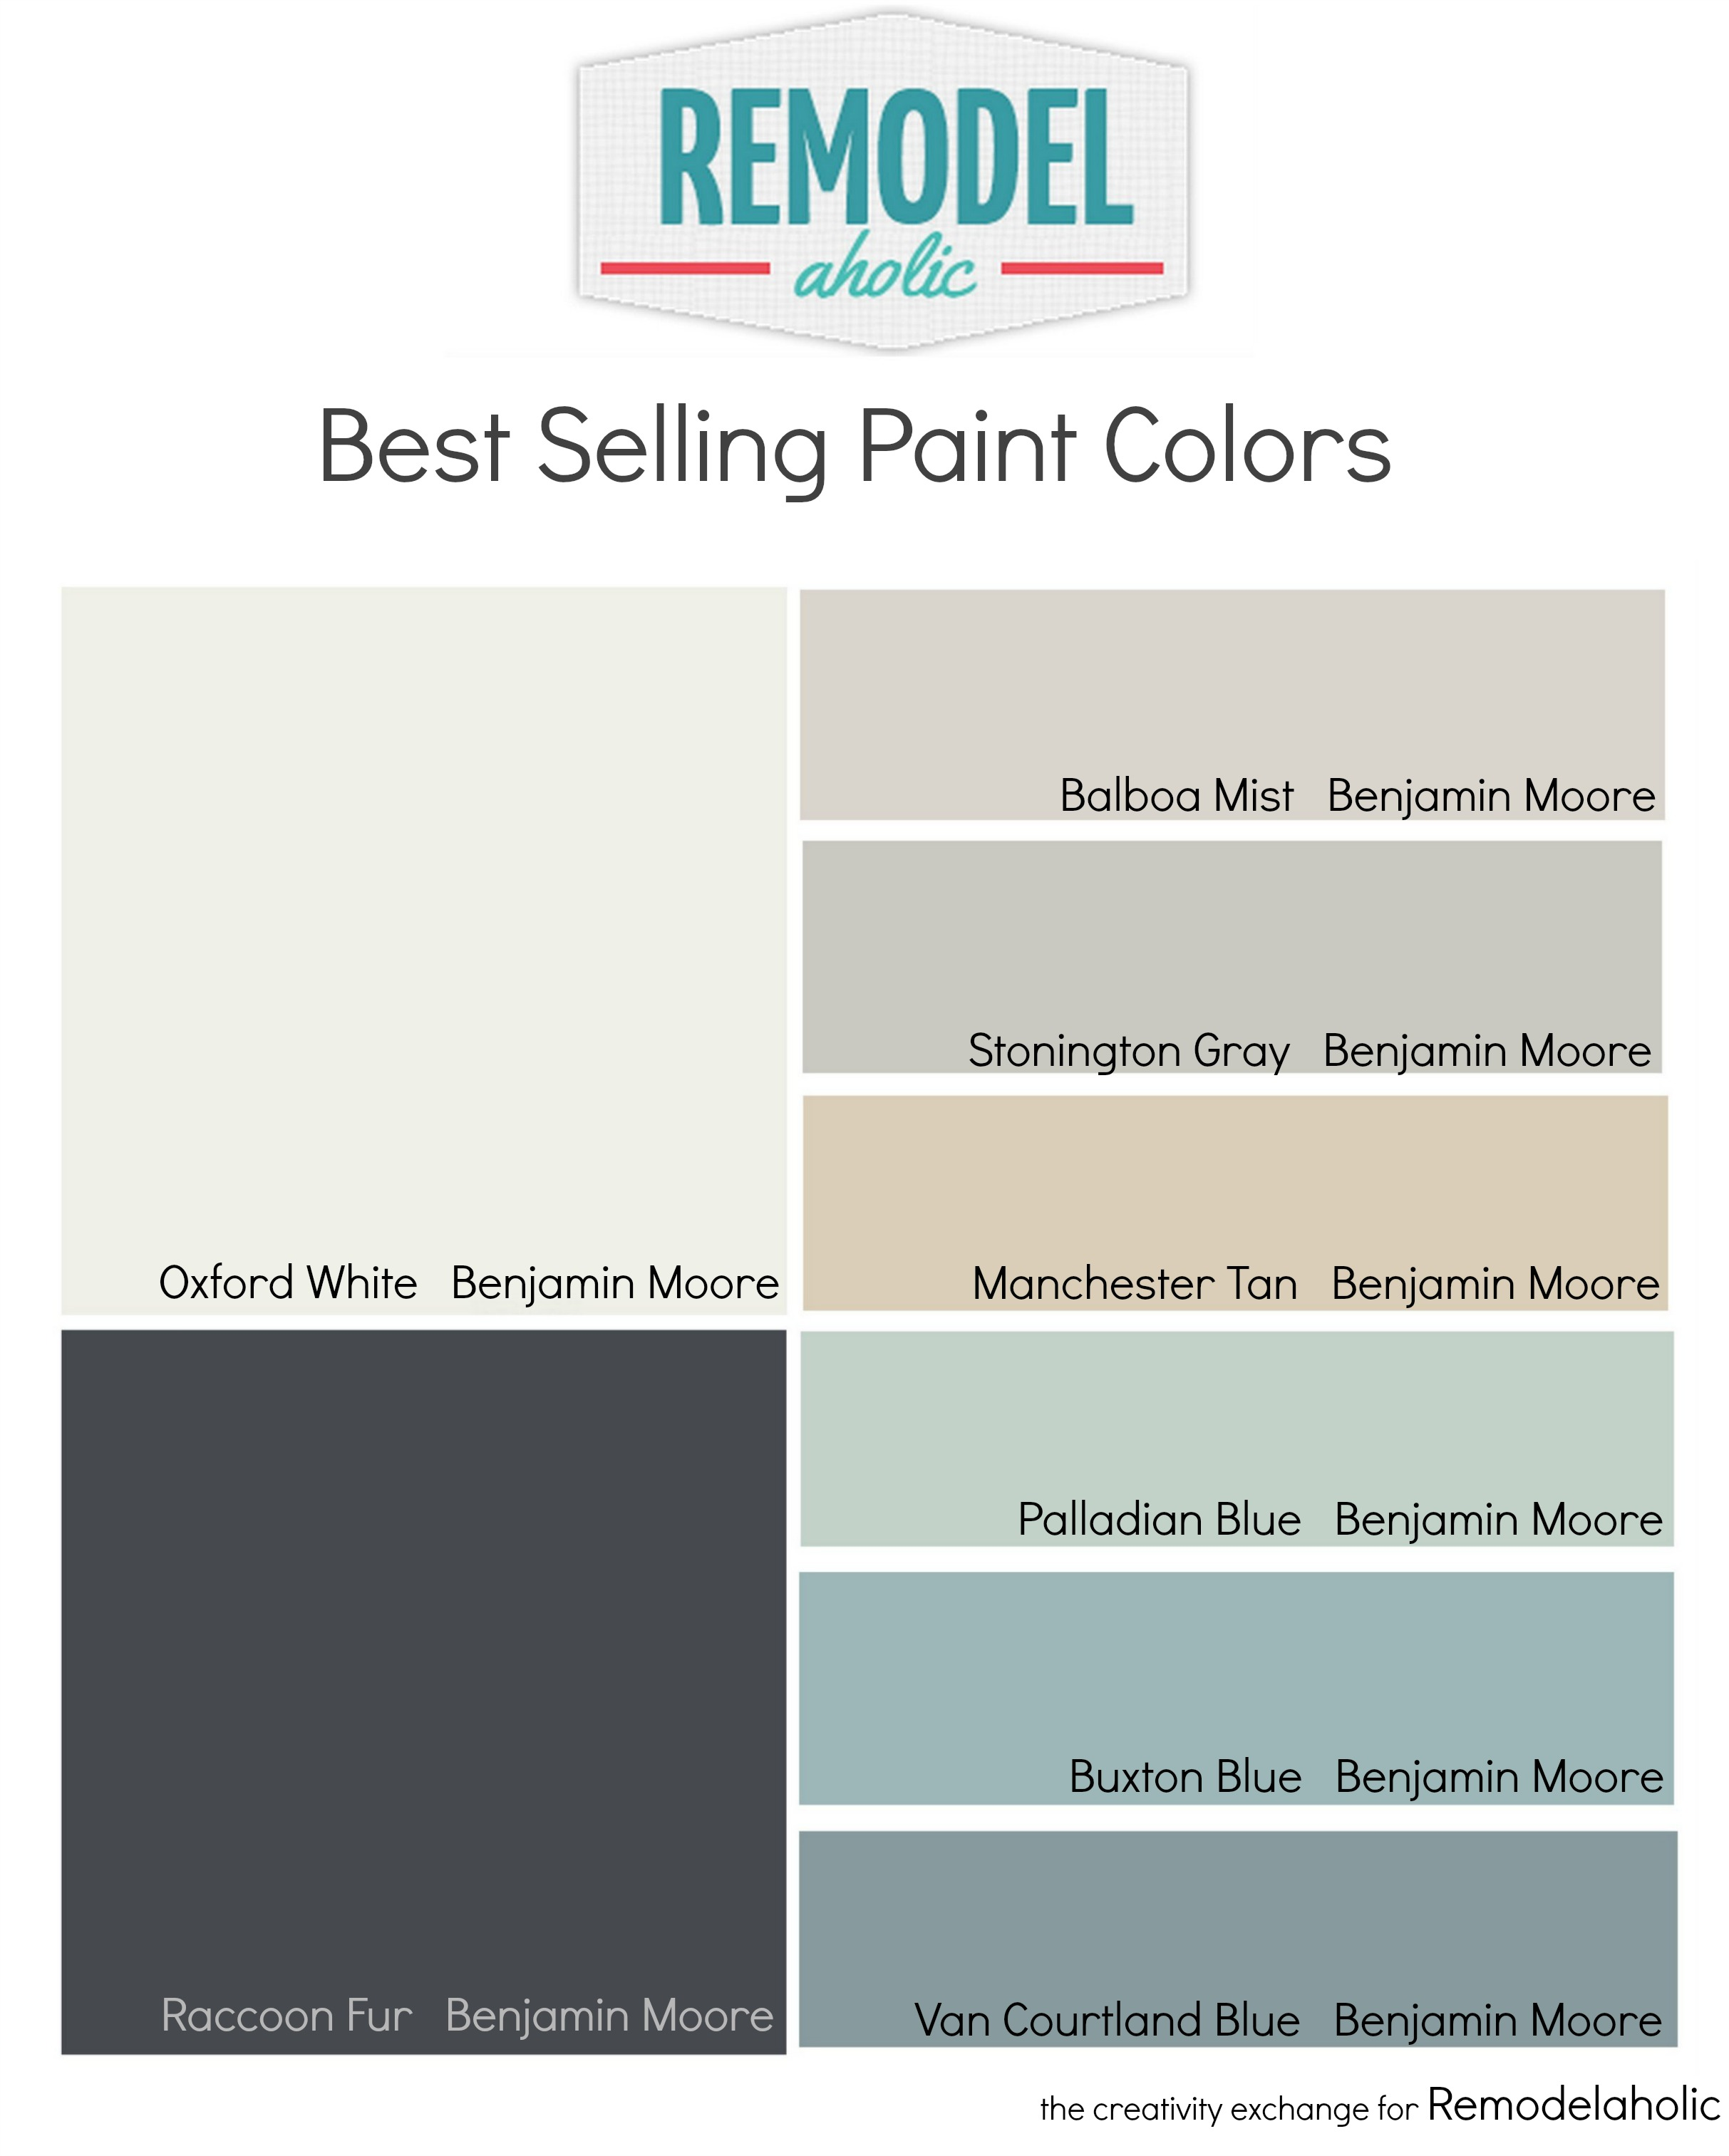 Most Popular and Best Selling Paint Colors. Remodelaholic.com # ...